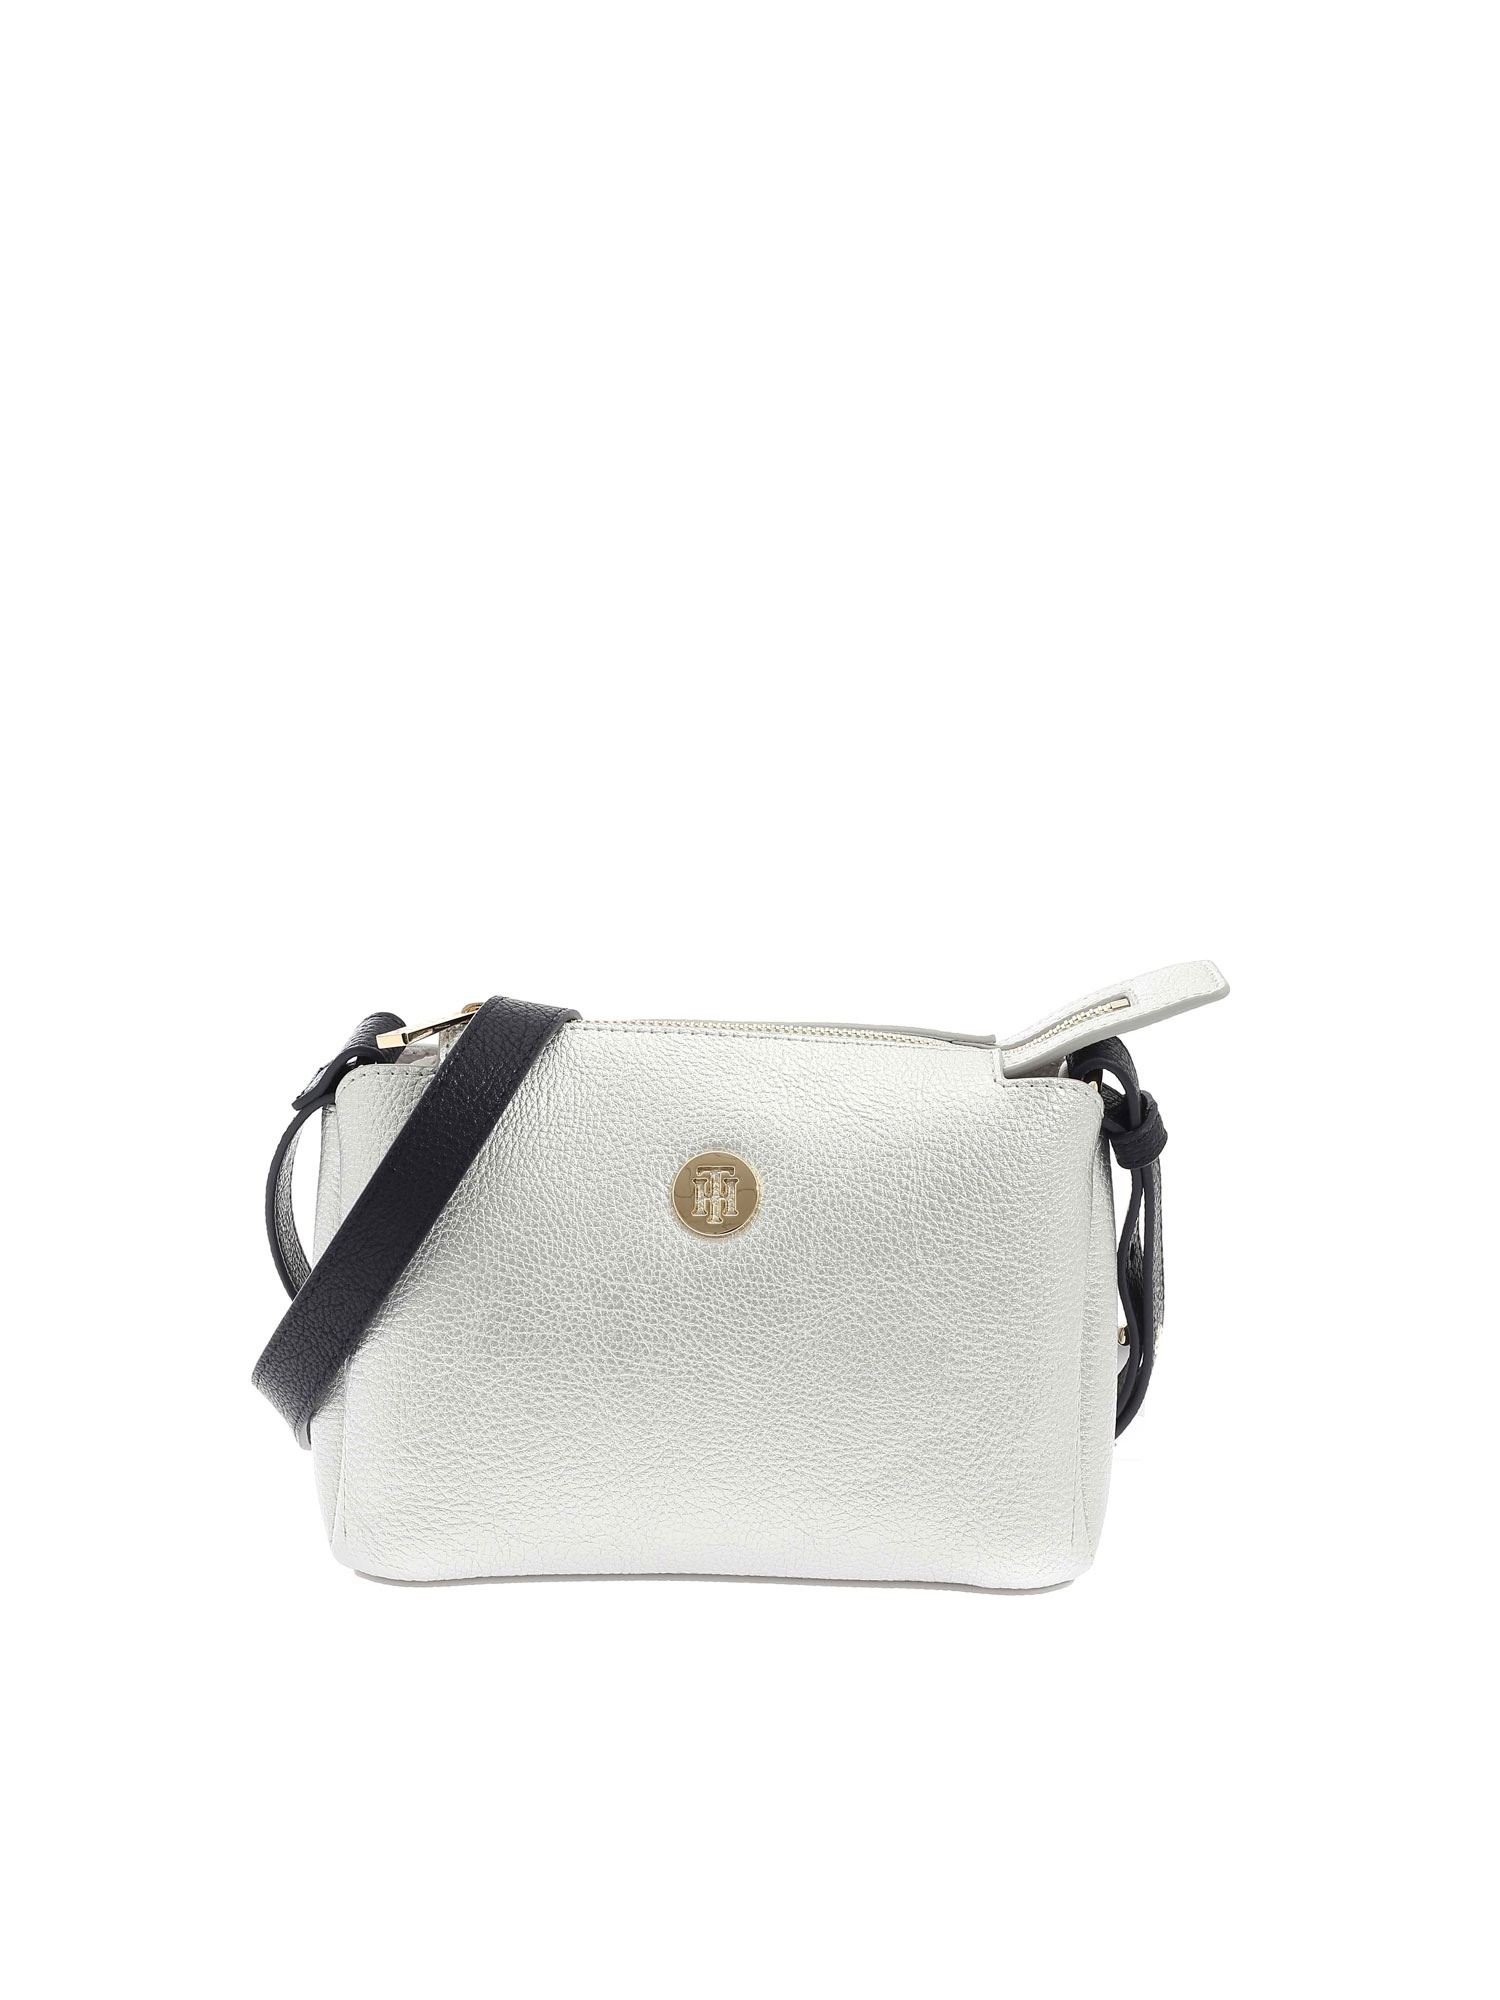 Tommy Hilfiger TH CORE BAG IN SILVER COLOR